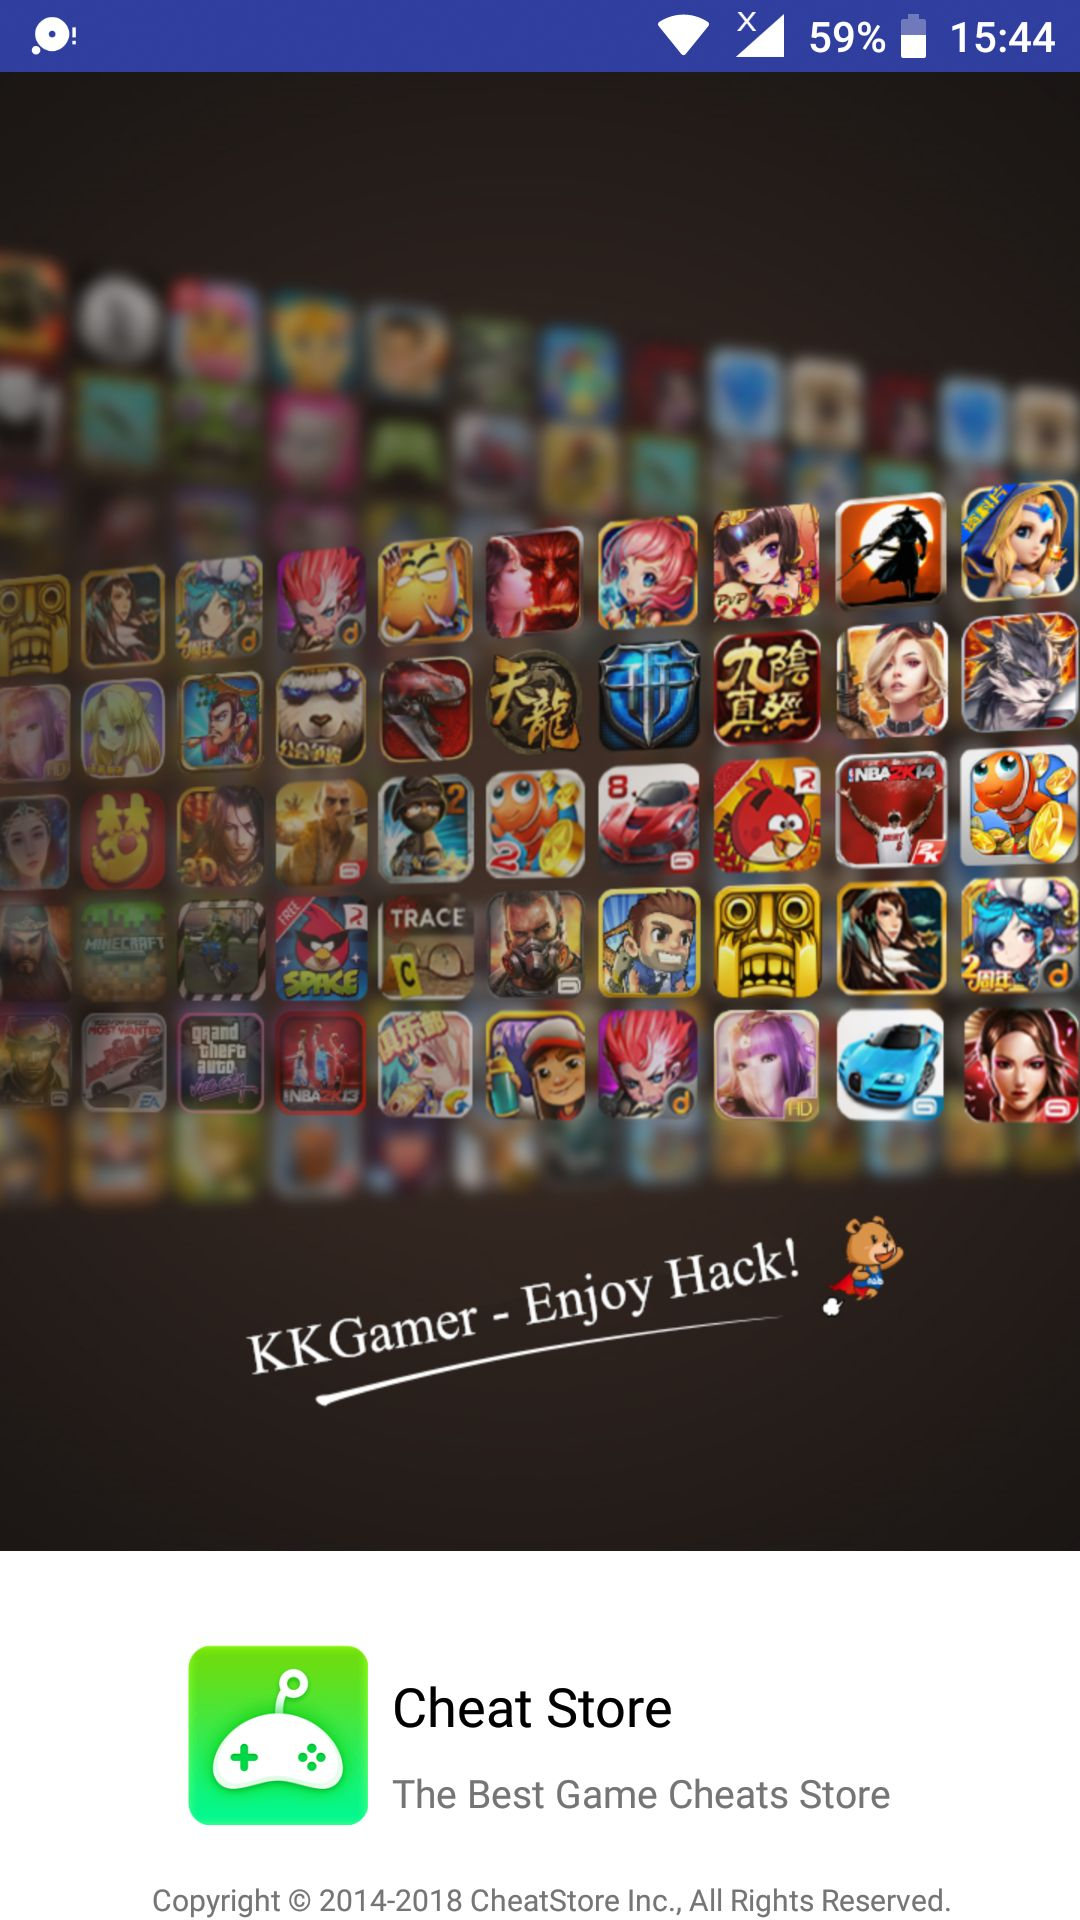 KKGamer (Cheat Store) APK Download (Latest Version) for Android